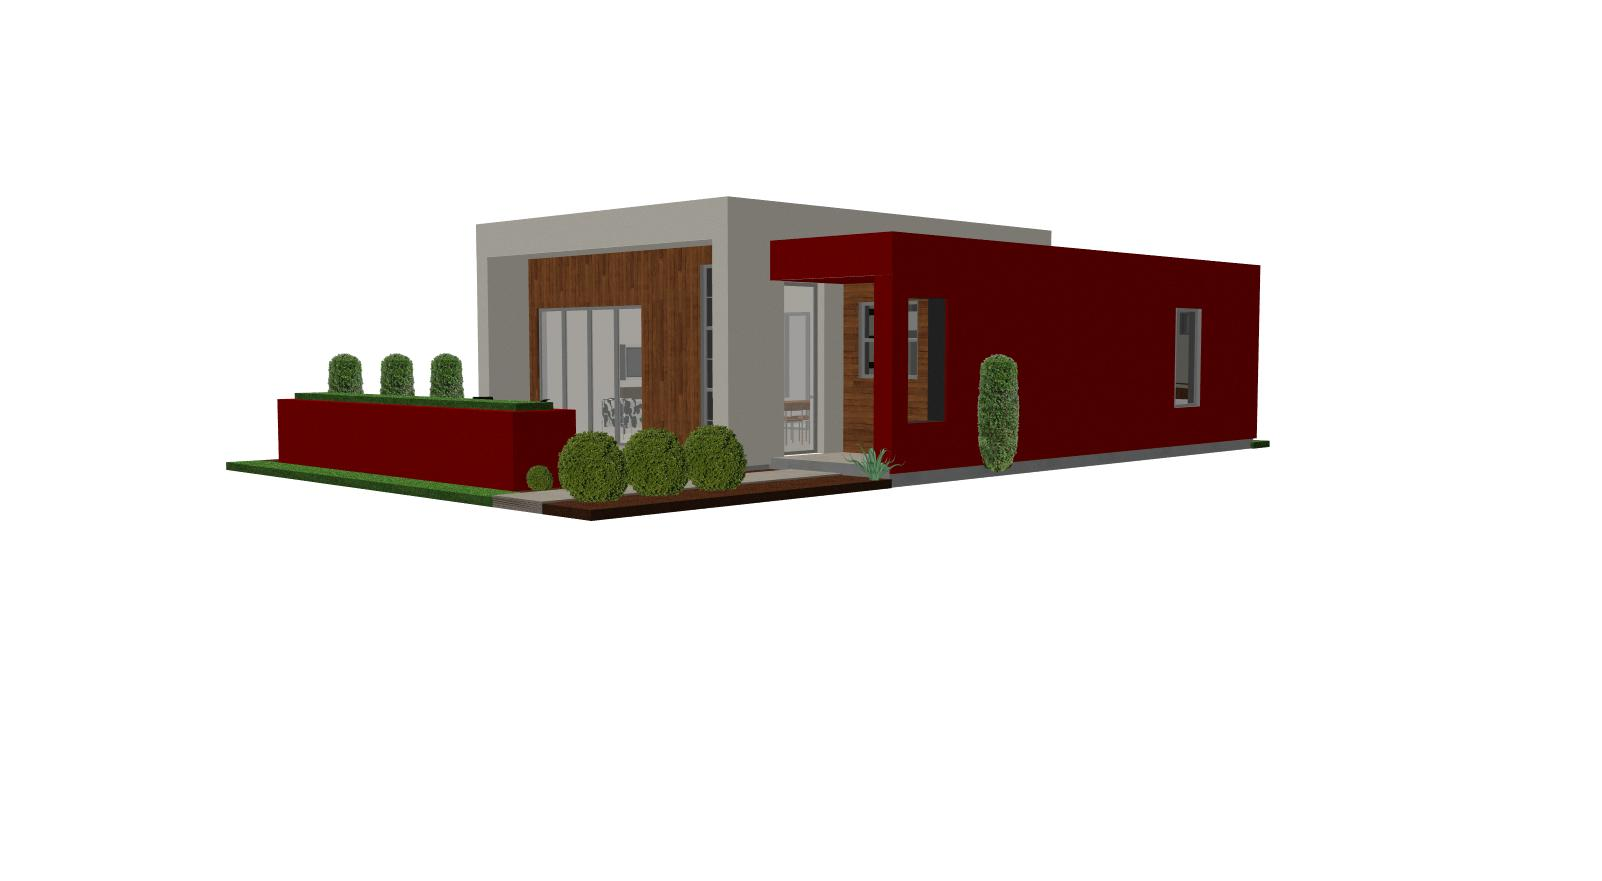 Contemporary casita house plan small house plan small for Small house plans modern